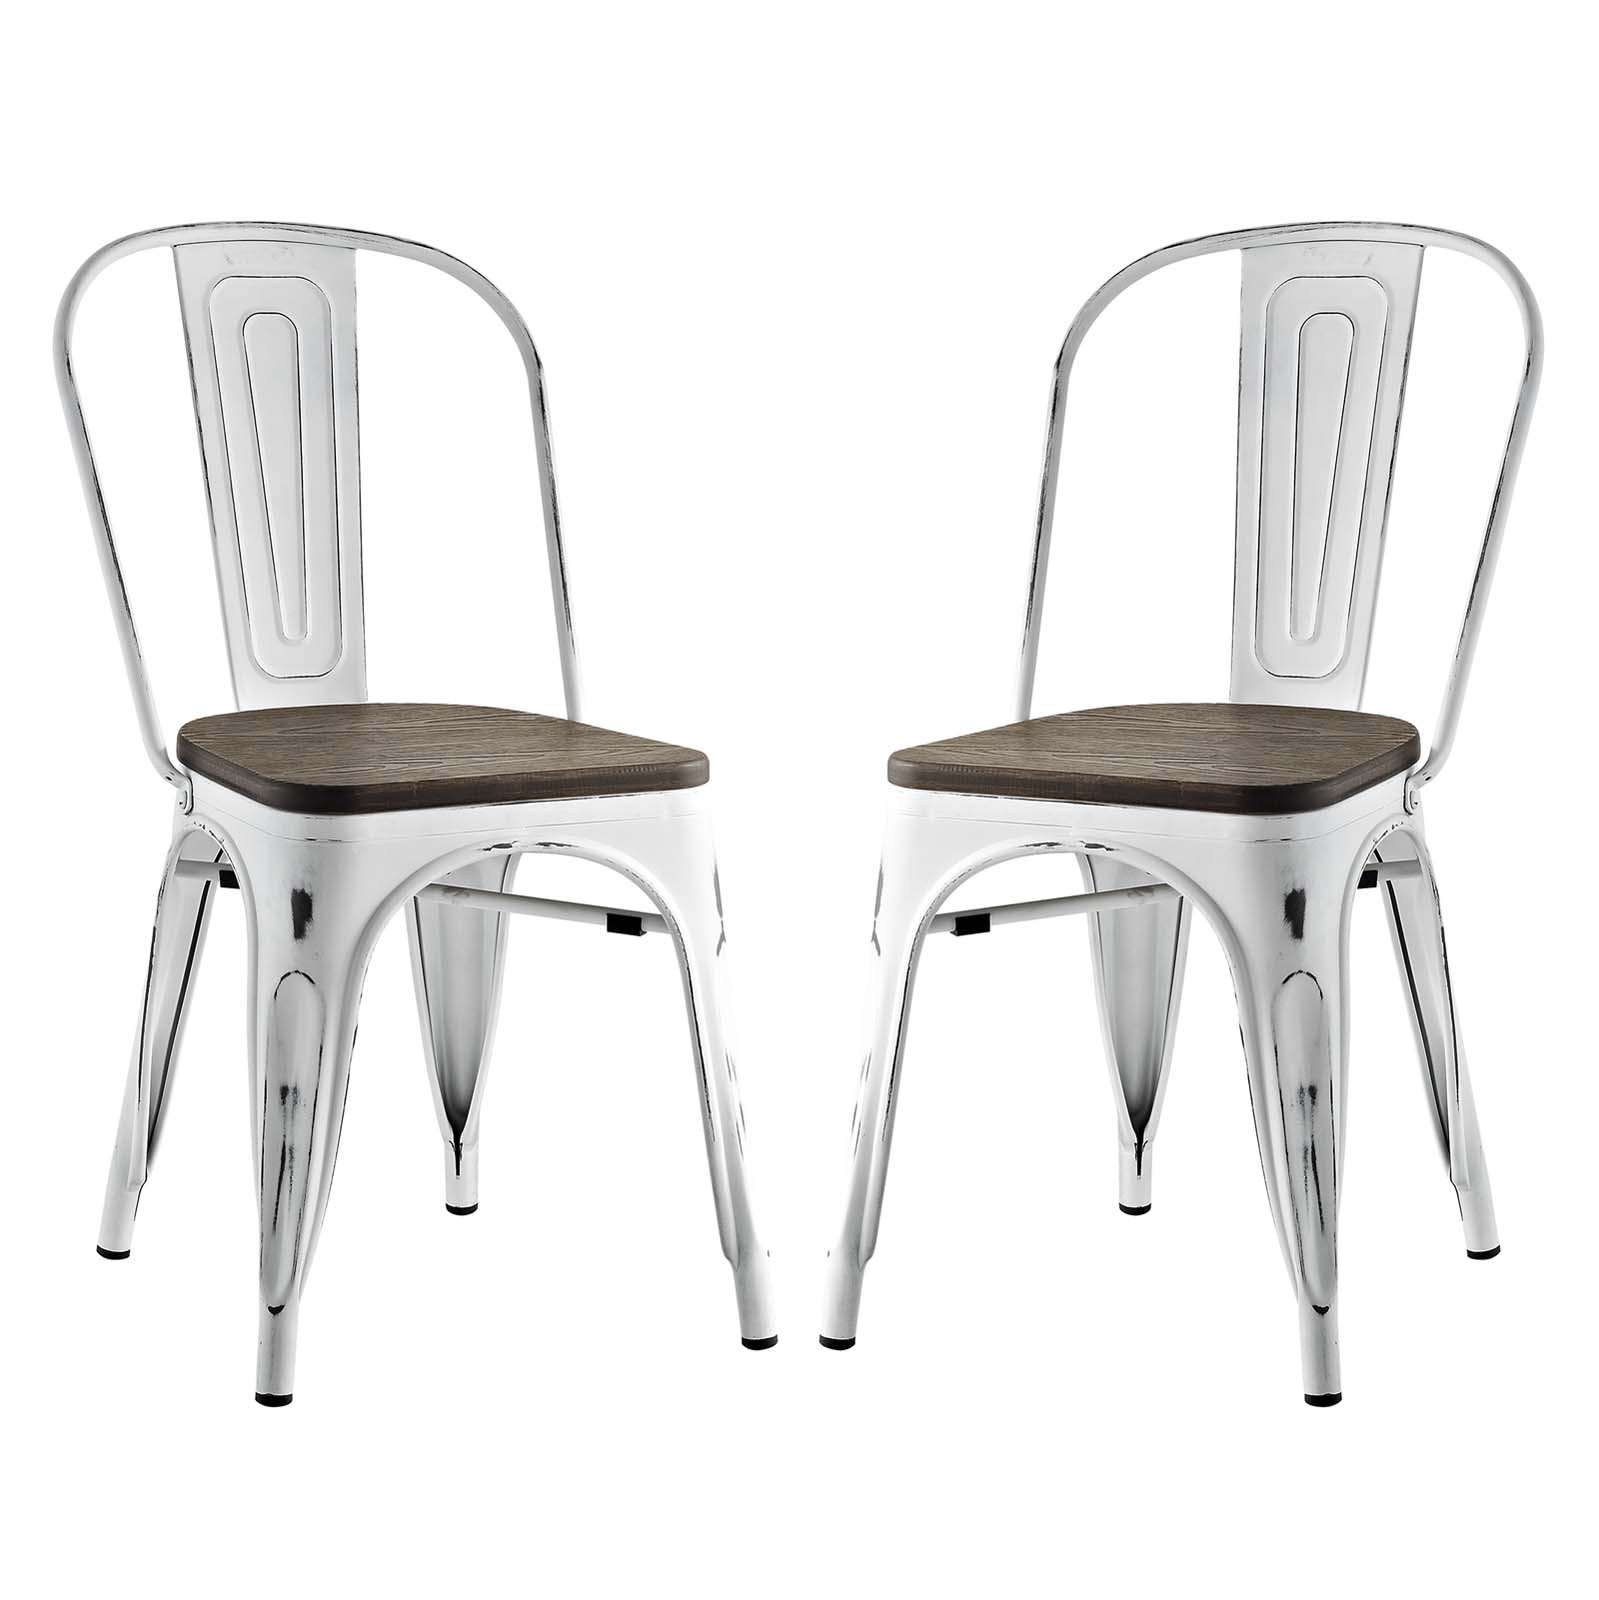 Modern Contemporary Urban Design Industrial Distressed Antique Vintage Style Kitchen Room Dining Chair ( Set of 2), White, Metal